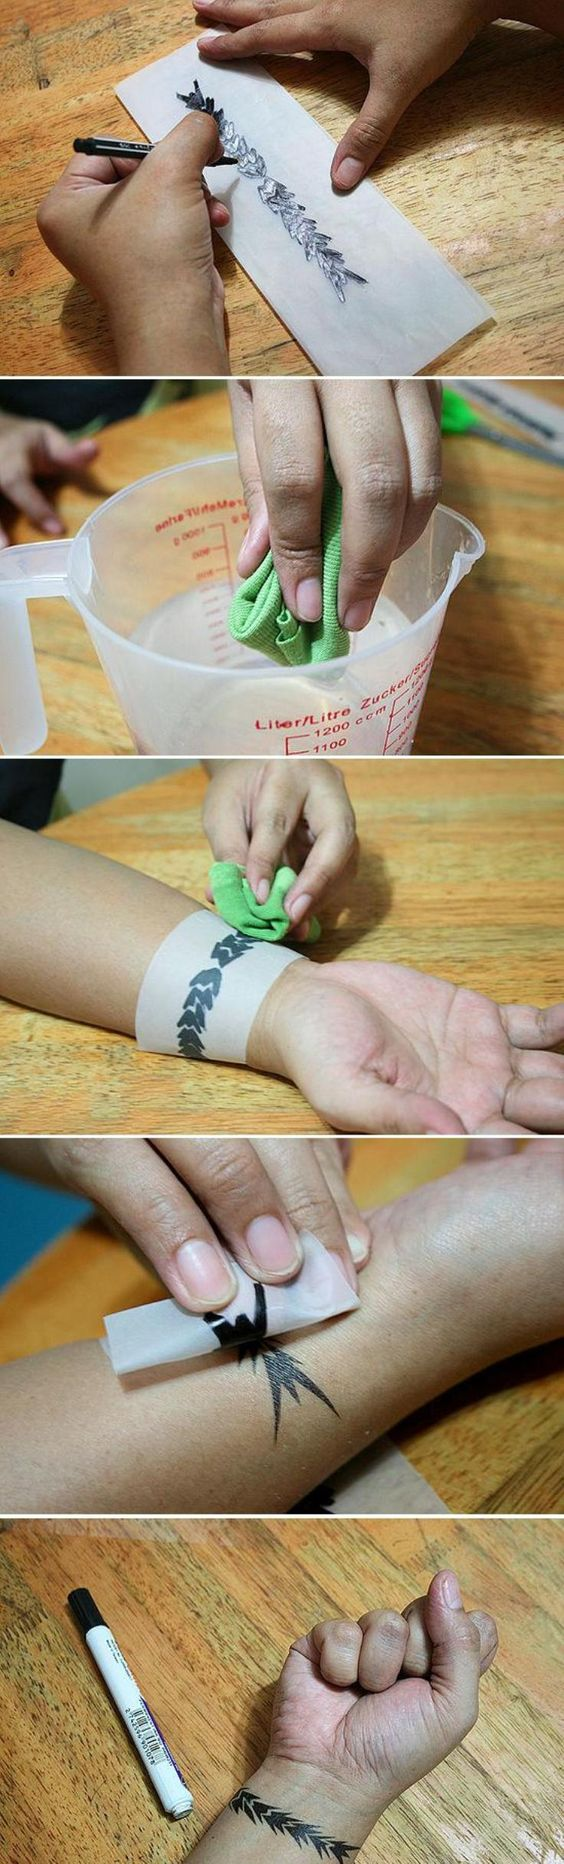 Make your own tattoo